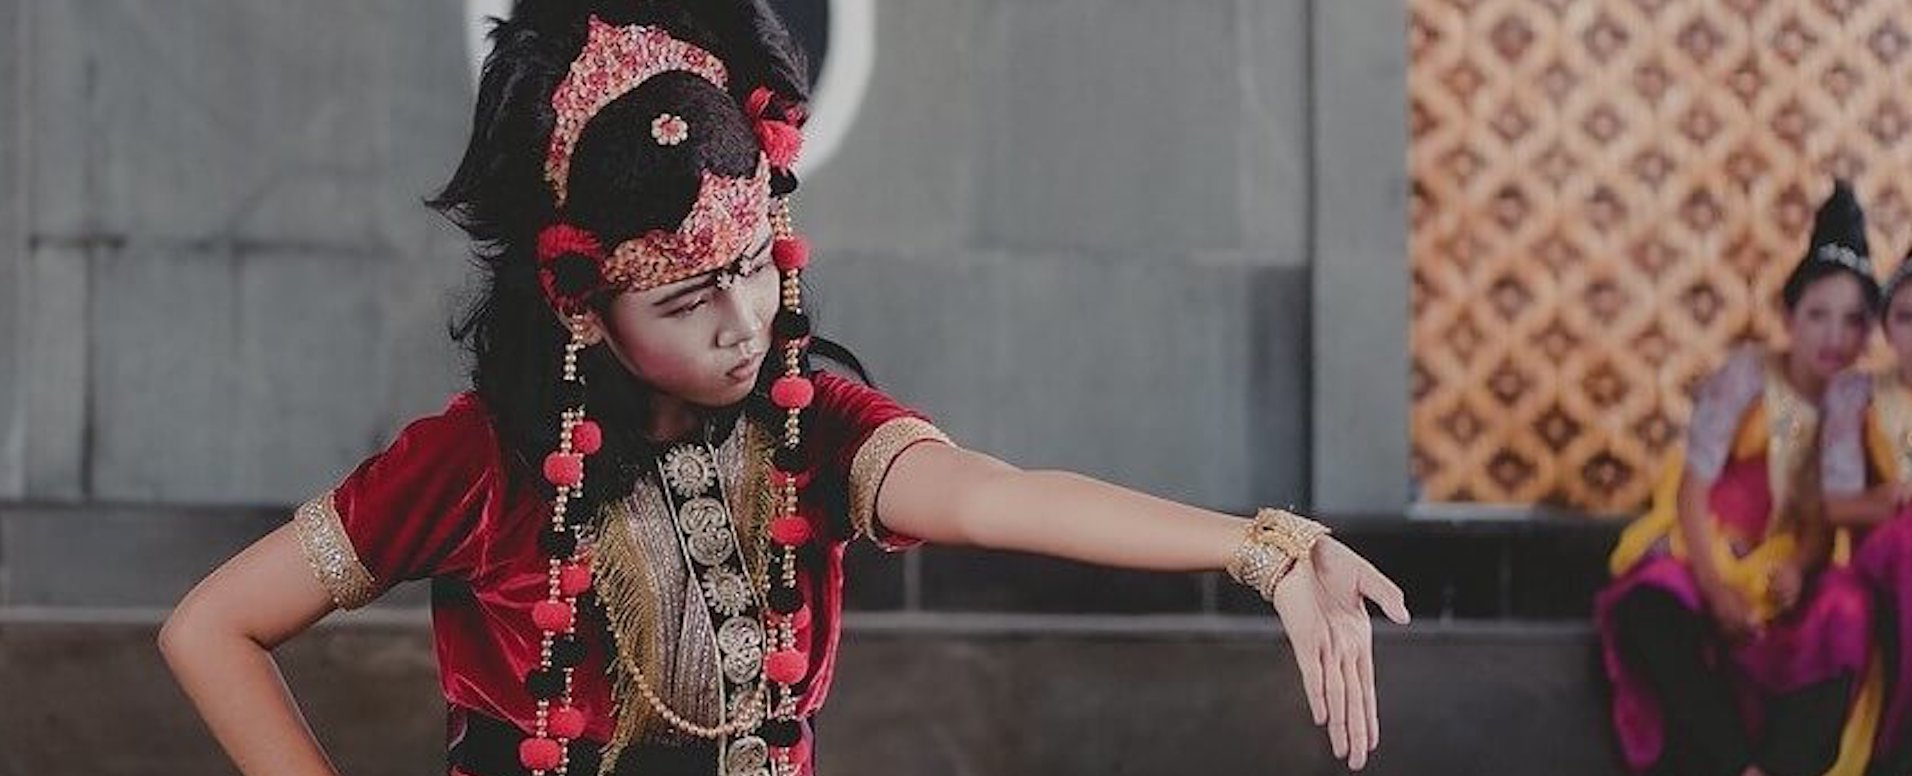 Dance to the rhythm of traditional dances - Indonesia